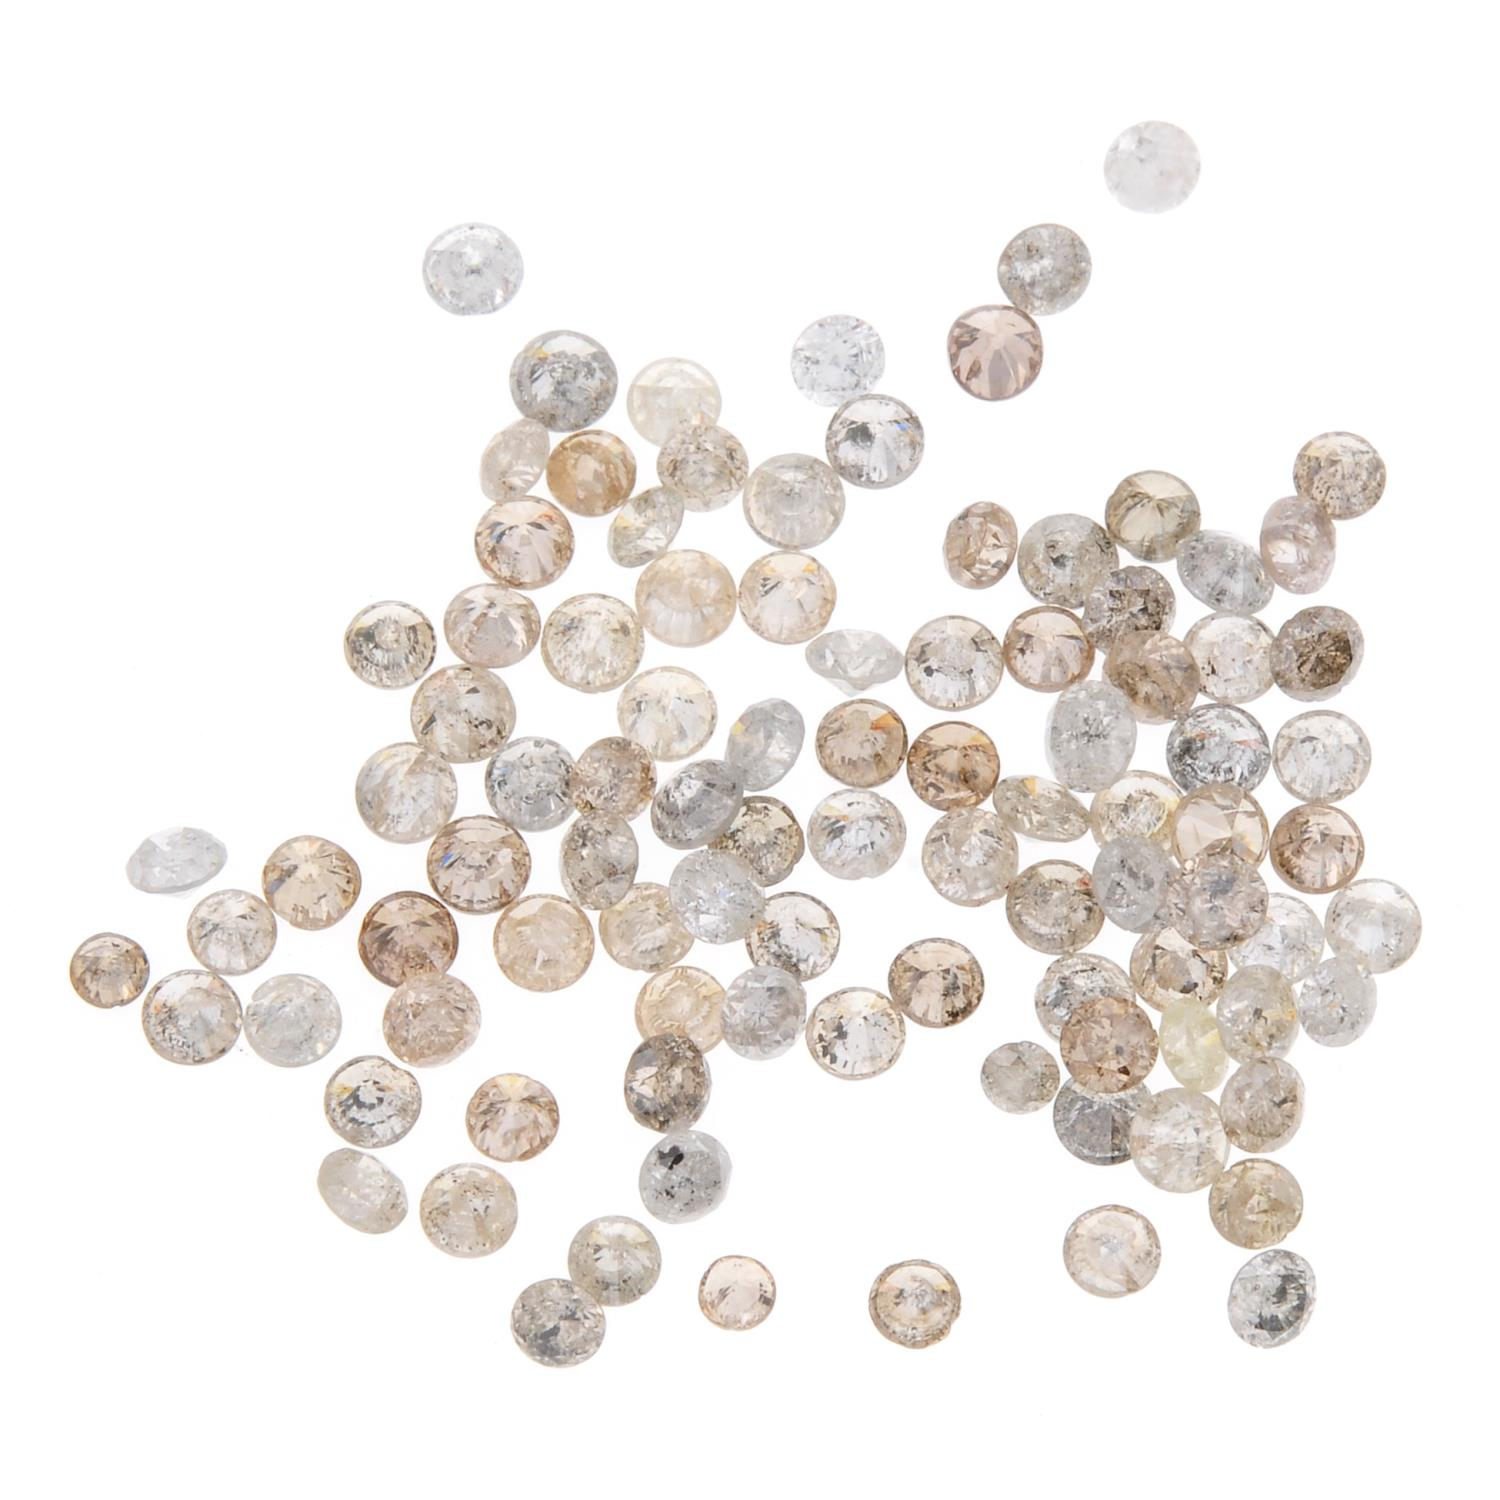 A small selection of round brilliant-cut diamonds and 'brown' melee diamonds.